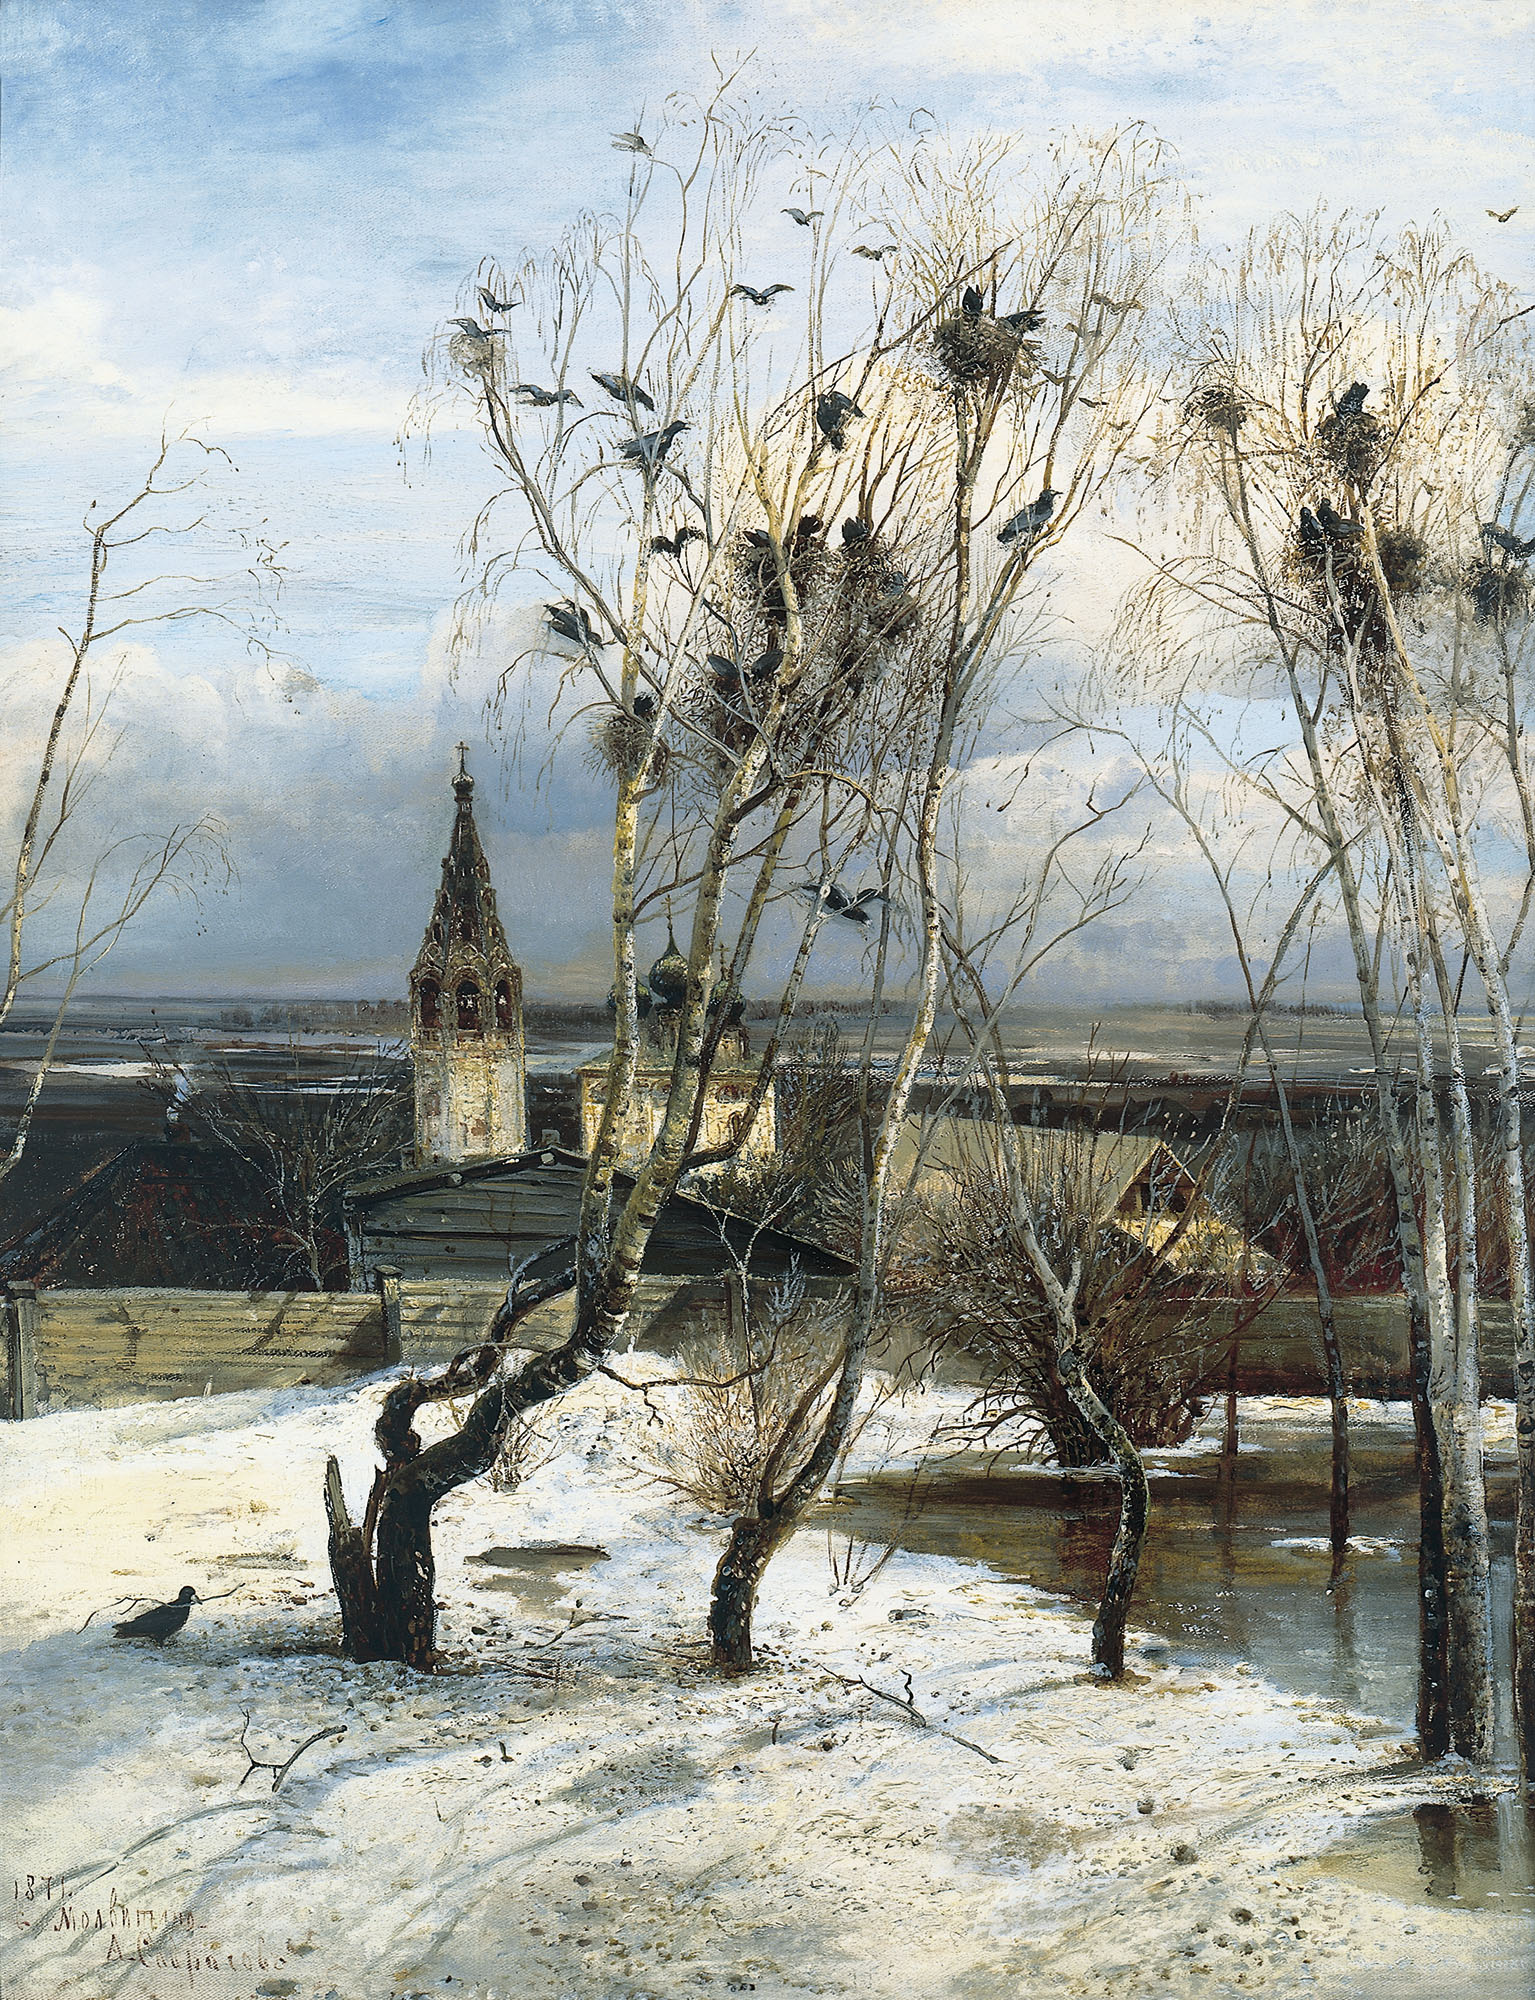 Alexei Savrasov - Rooks have returned, oil on canvas (1871)